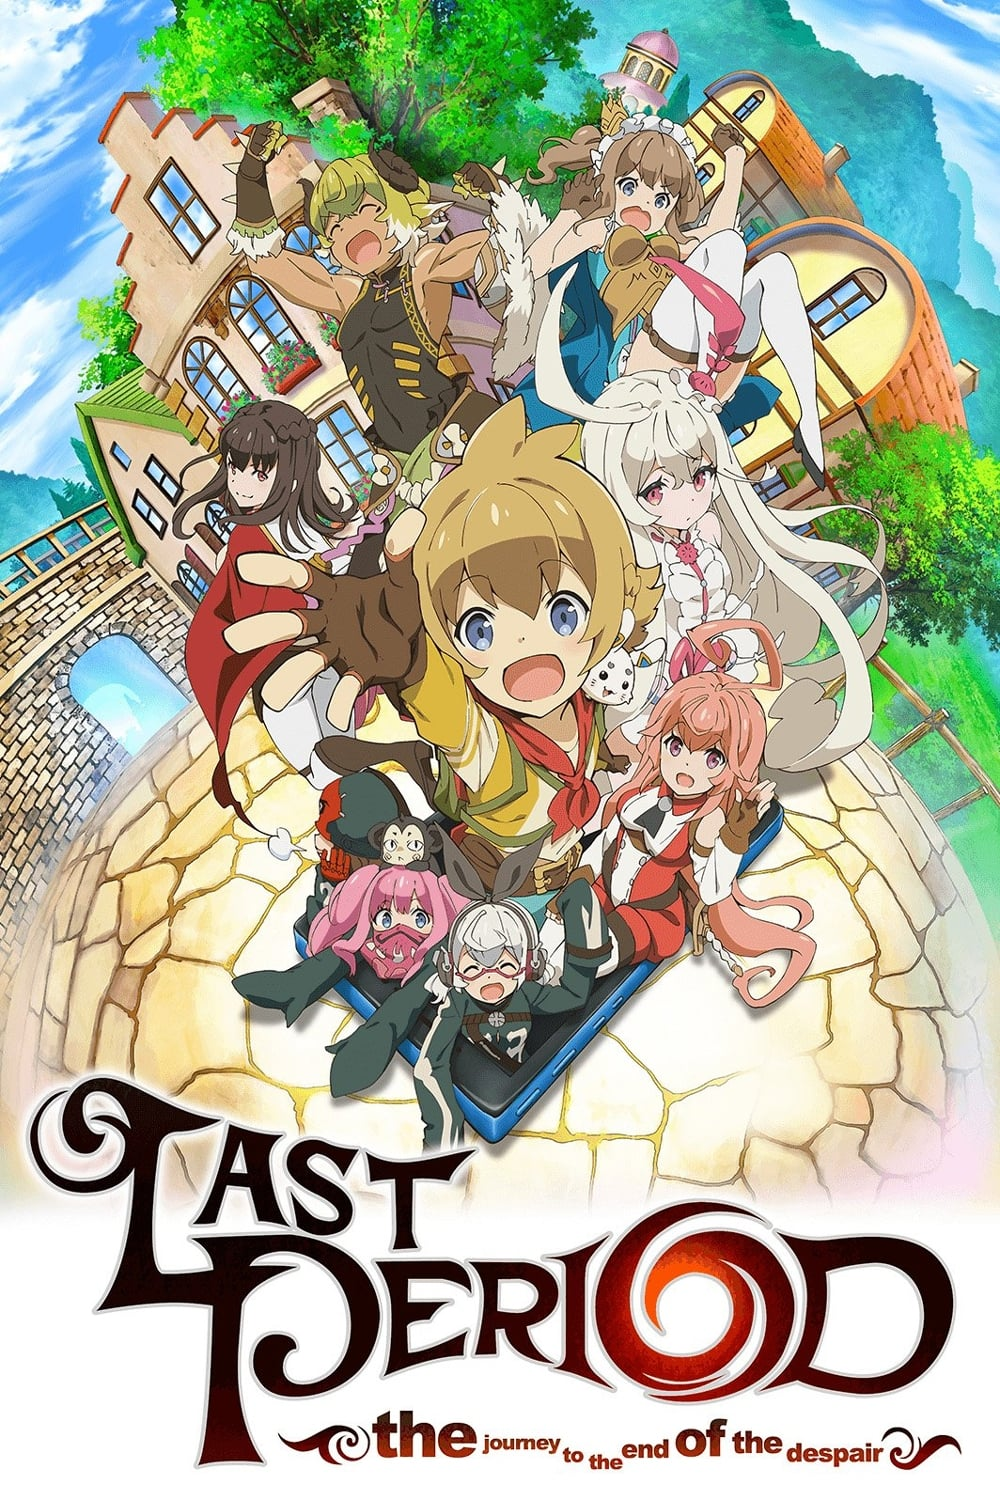 Last Period: the journey to the end of the despair (2018)